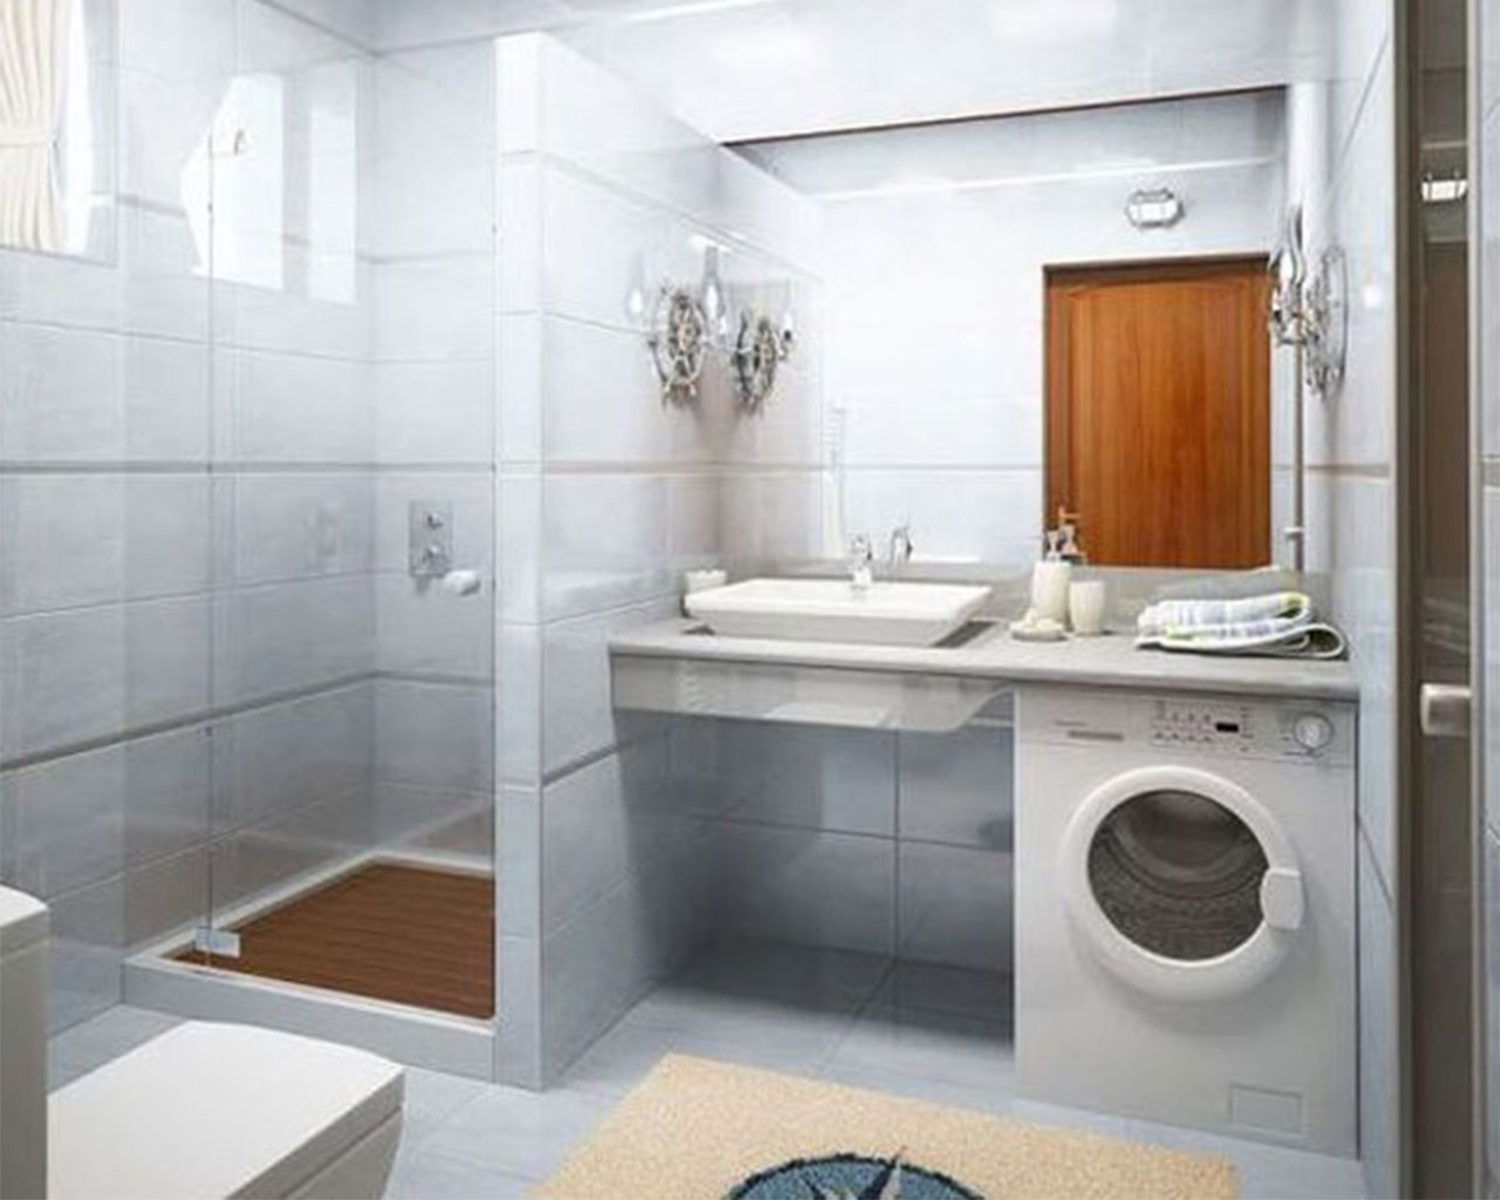 Delicieux Download Simple Bathroom Design Idea With Washing Machine Image ...